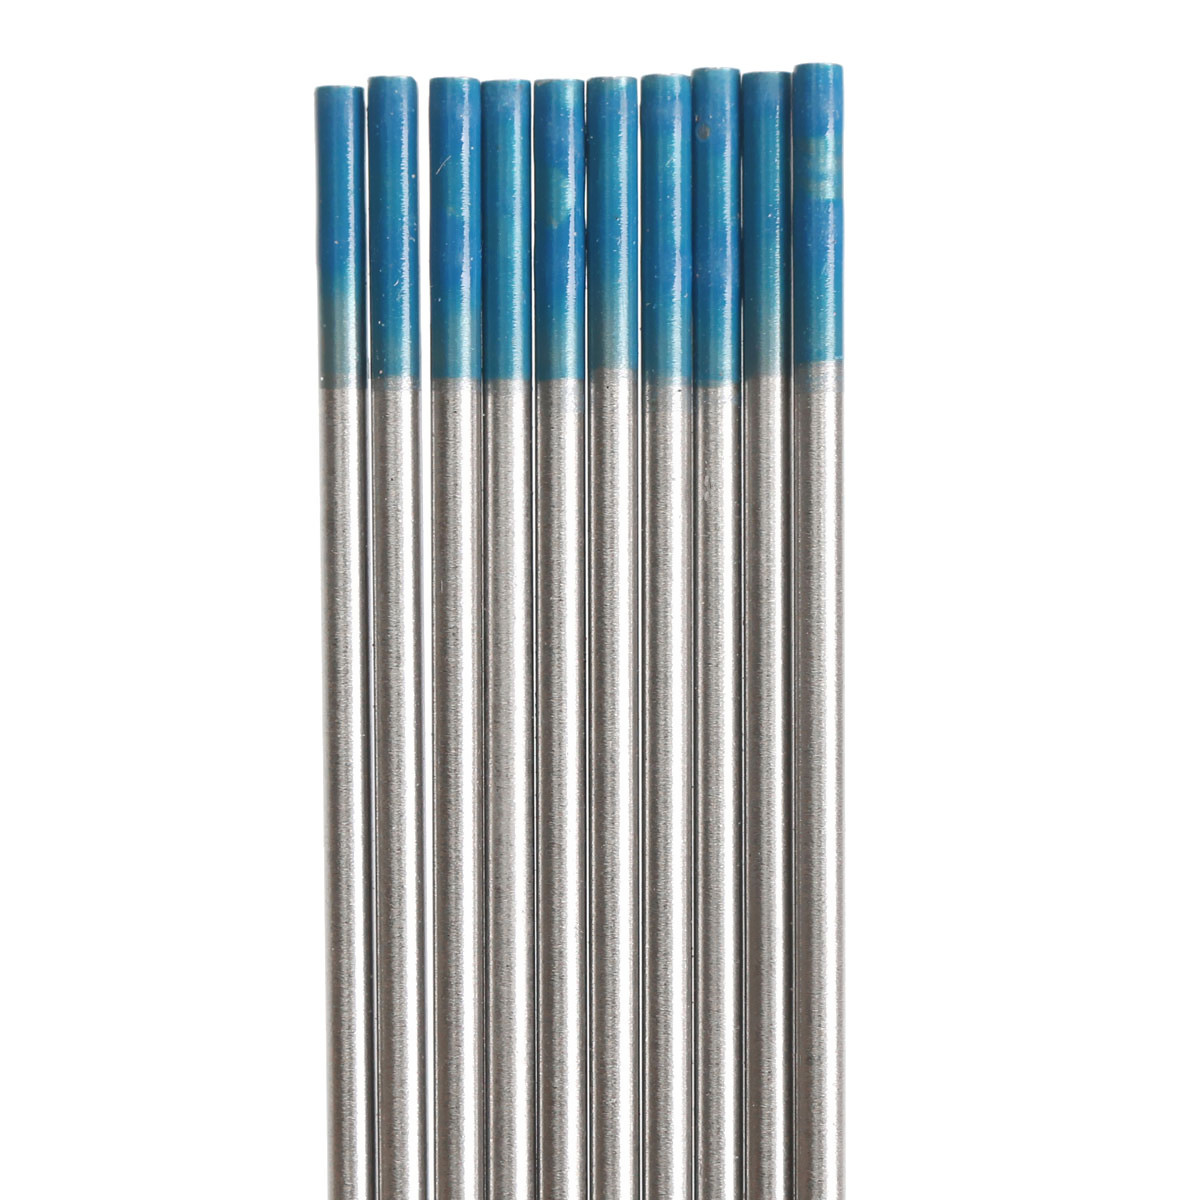 10pcs Tungsten WL20 1/16inch x7inch 2 Percent Lanthanated Blue Tip TIG Electrode 1.6mmx175mm Weld Welding Machine Accessories